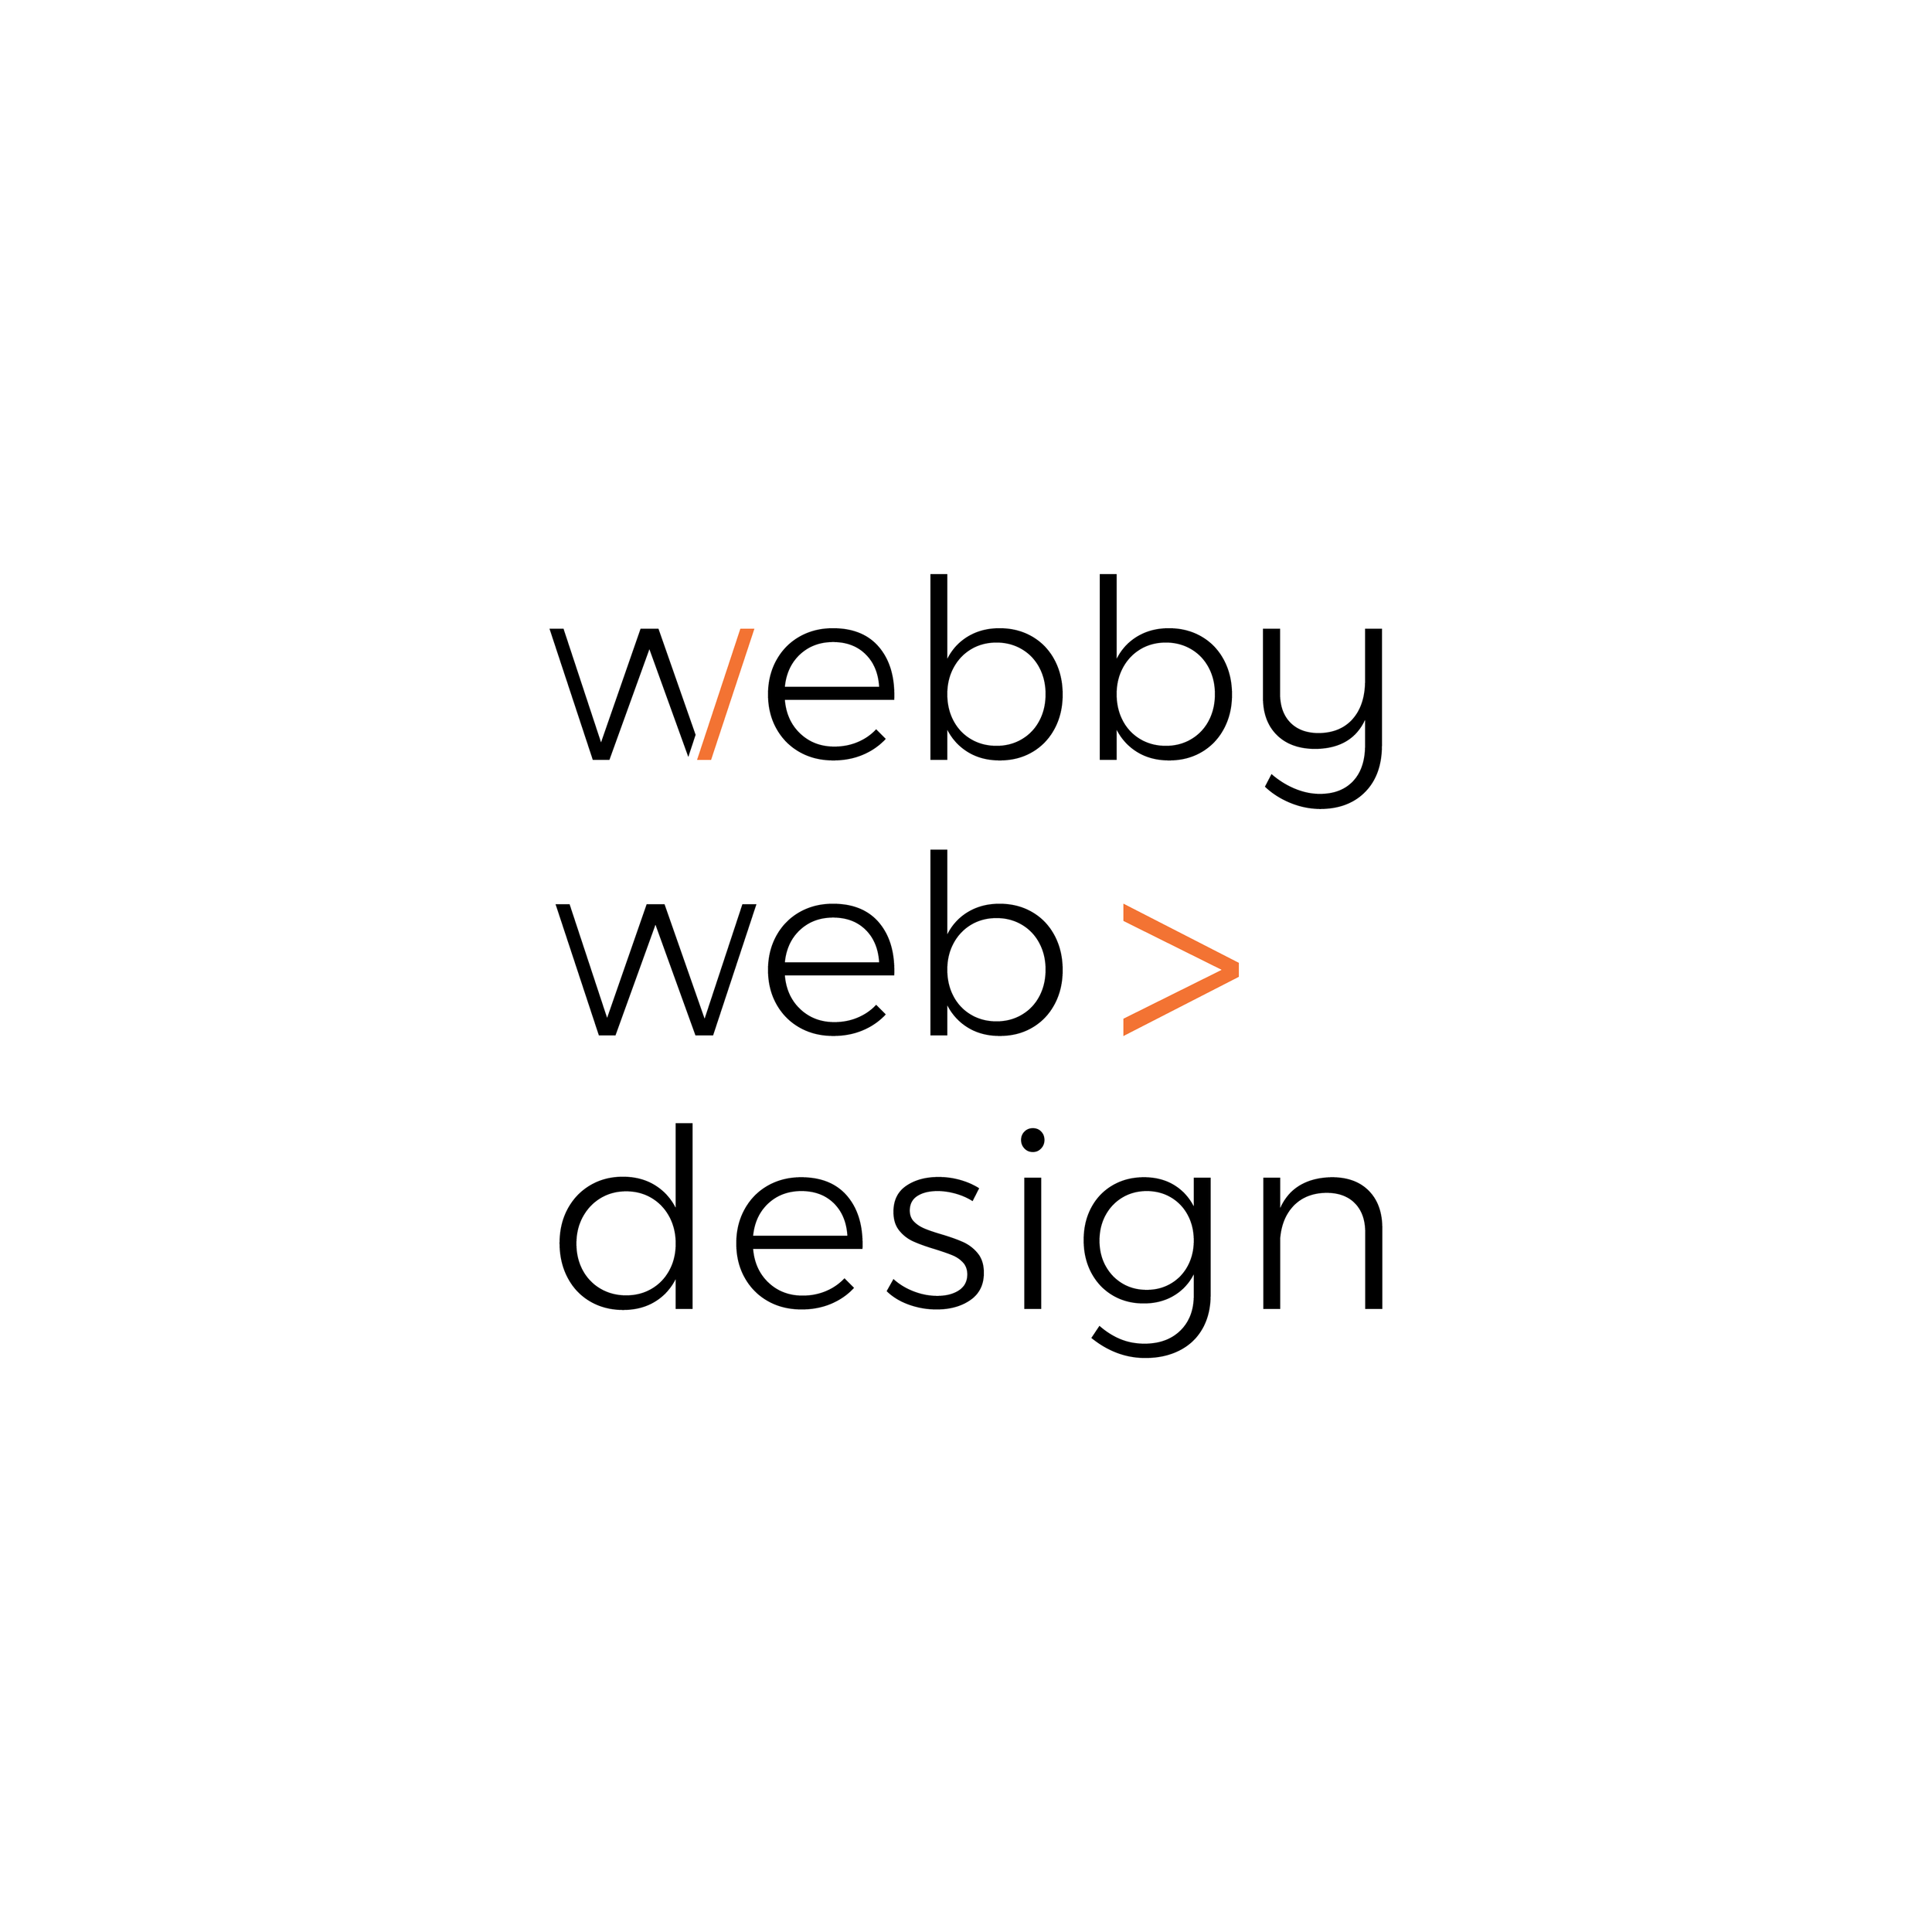 webby web_design_on white-01.png